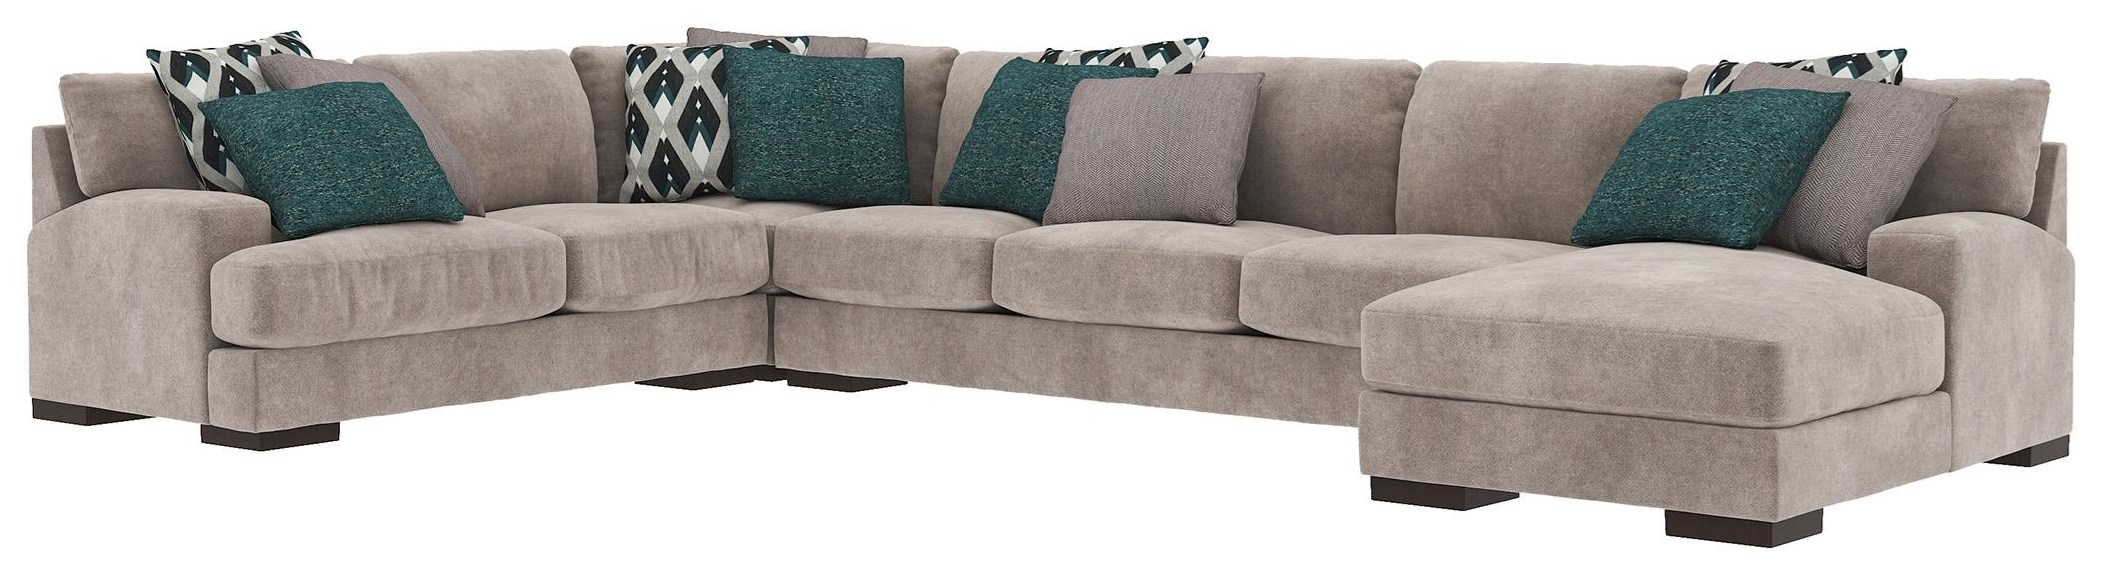 4 PC Sectional and Ottoman Set